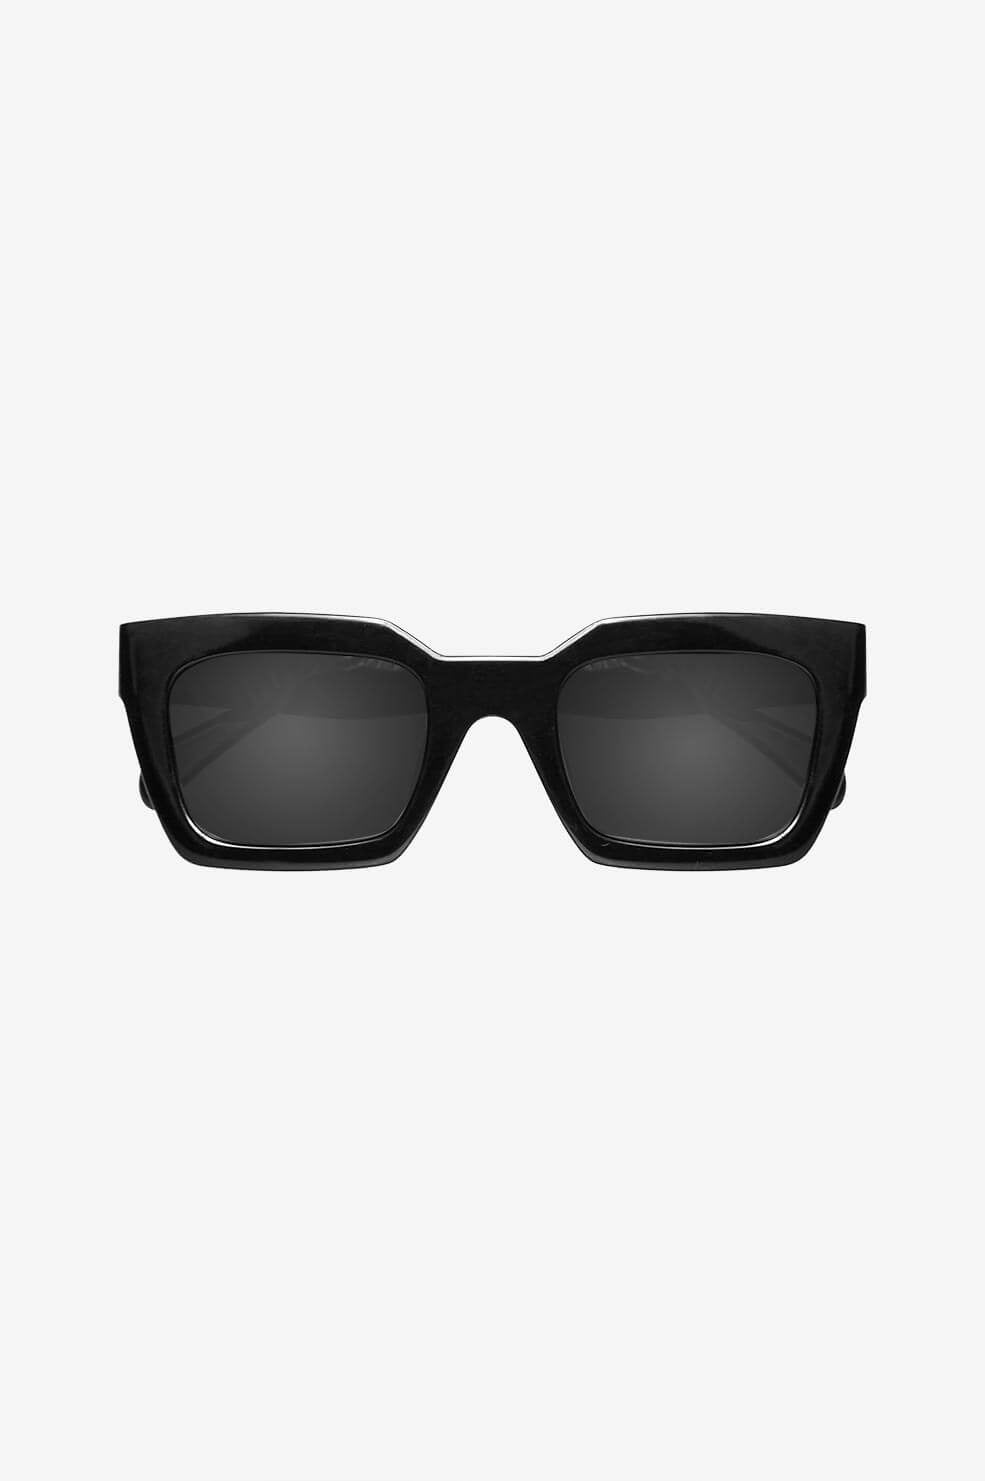 Indio Sunglasses - Bone